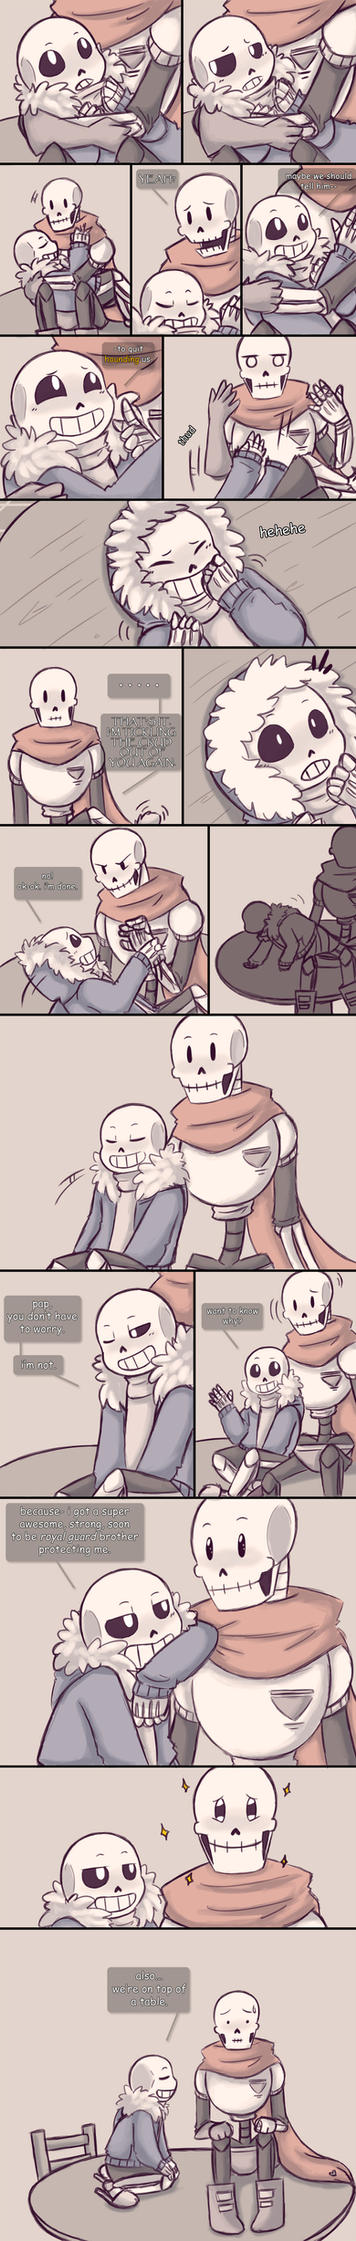 .Undertale Fancomic: Annoying Dog - Page 16.+ by Kintanga